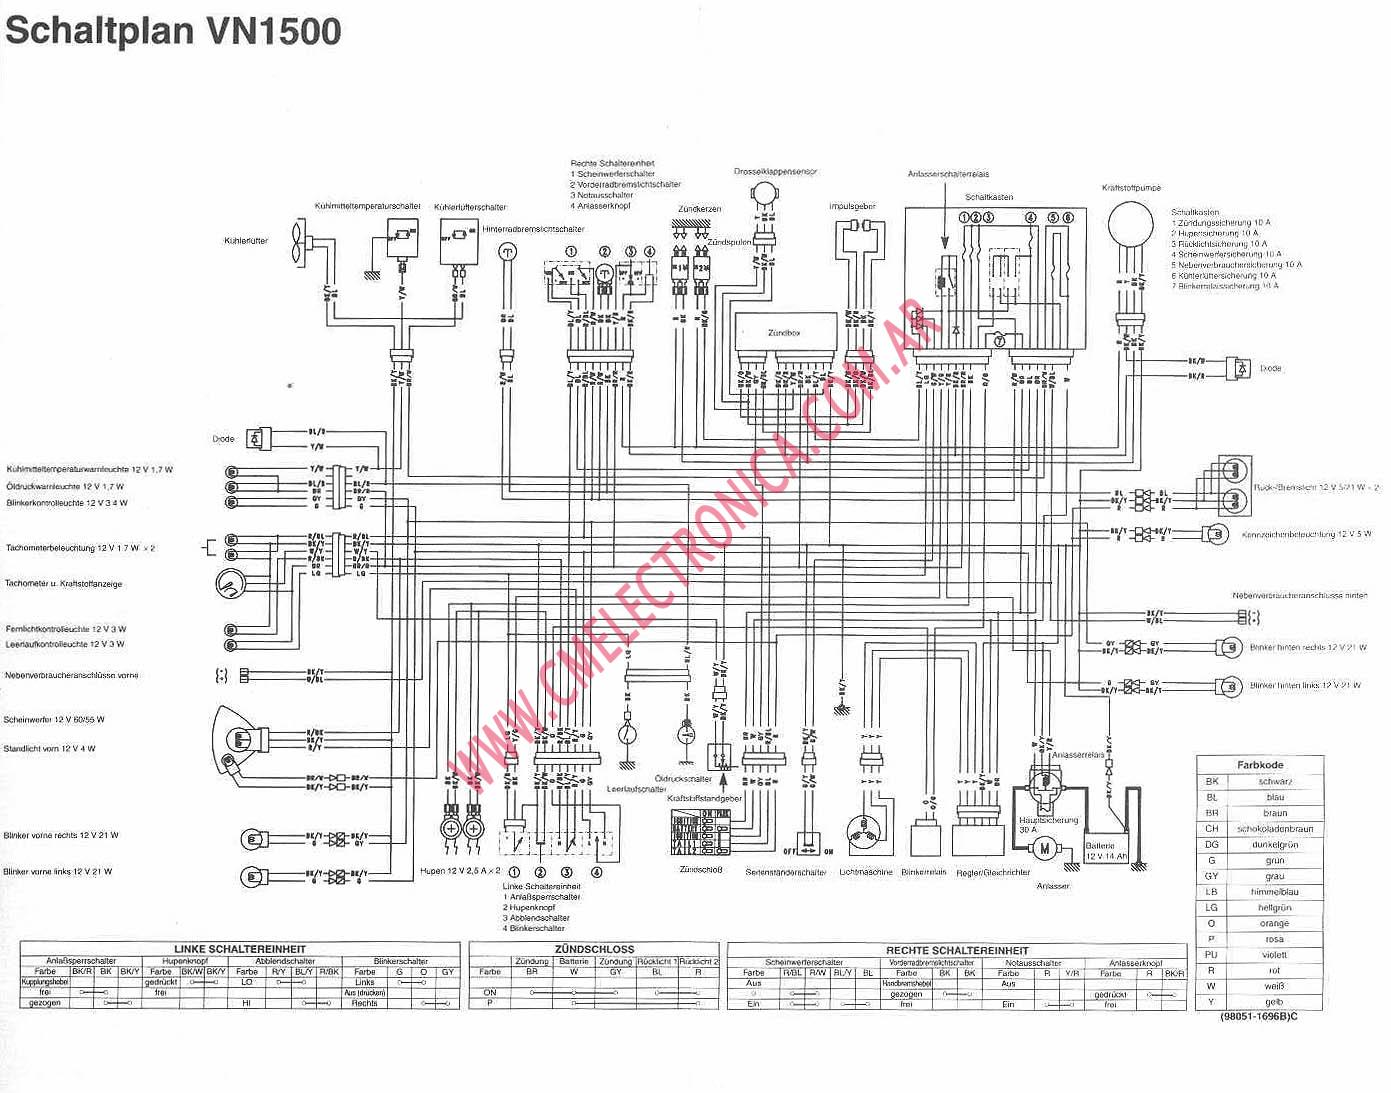 Kawasaki Vn1500 Wiring Diagram Wire Data Schema 2001 Vulcan 1500 Free Picture Zx12r Diagrams Engine 1997 1995